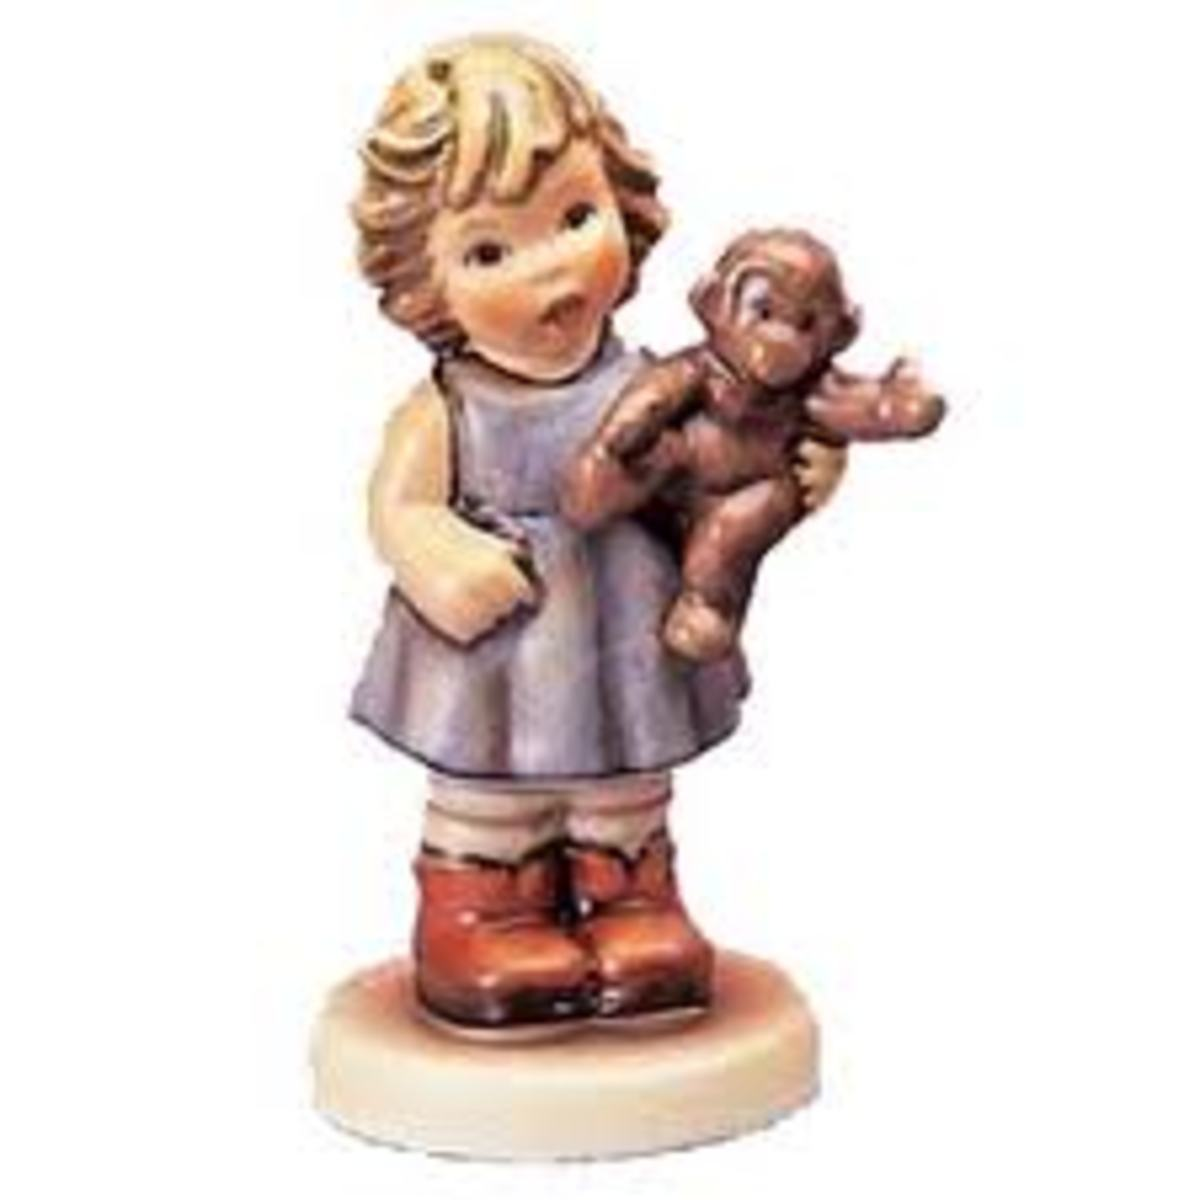 Hummel Figurines - Girl